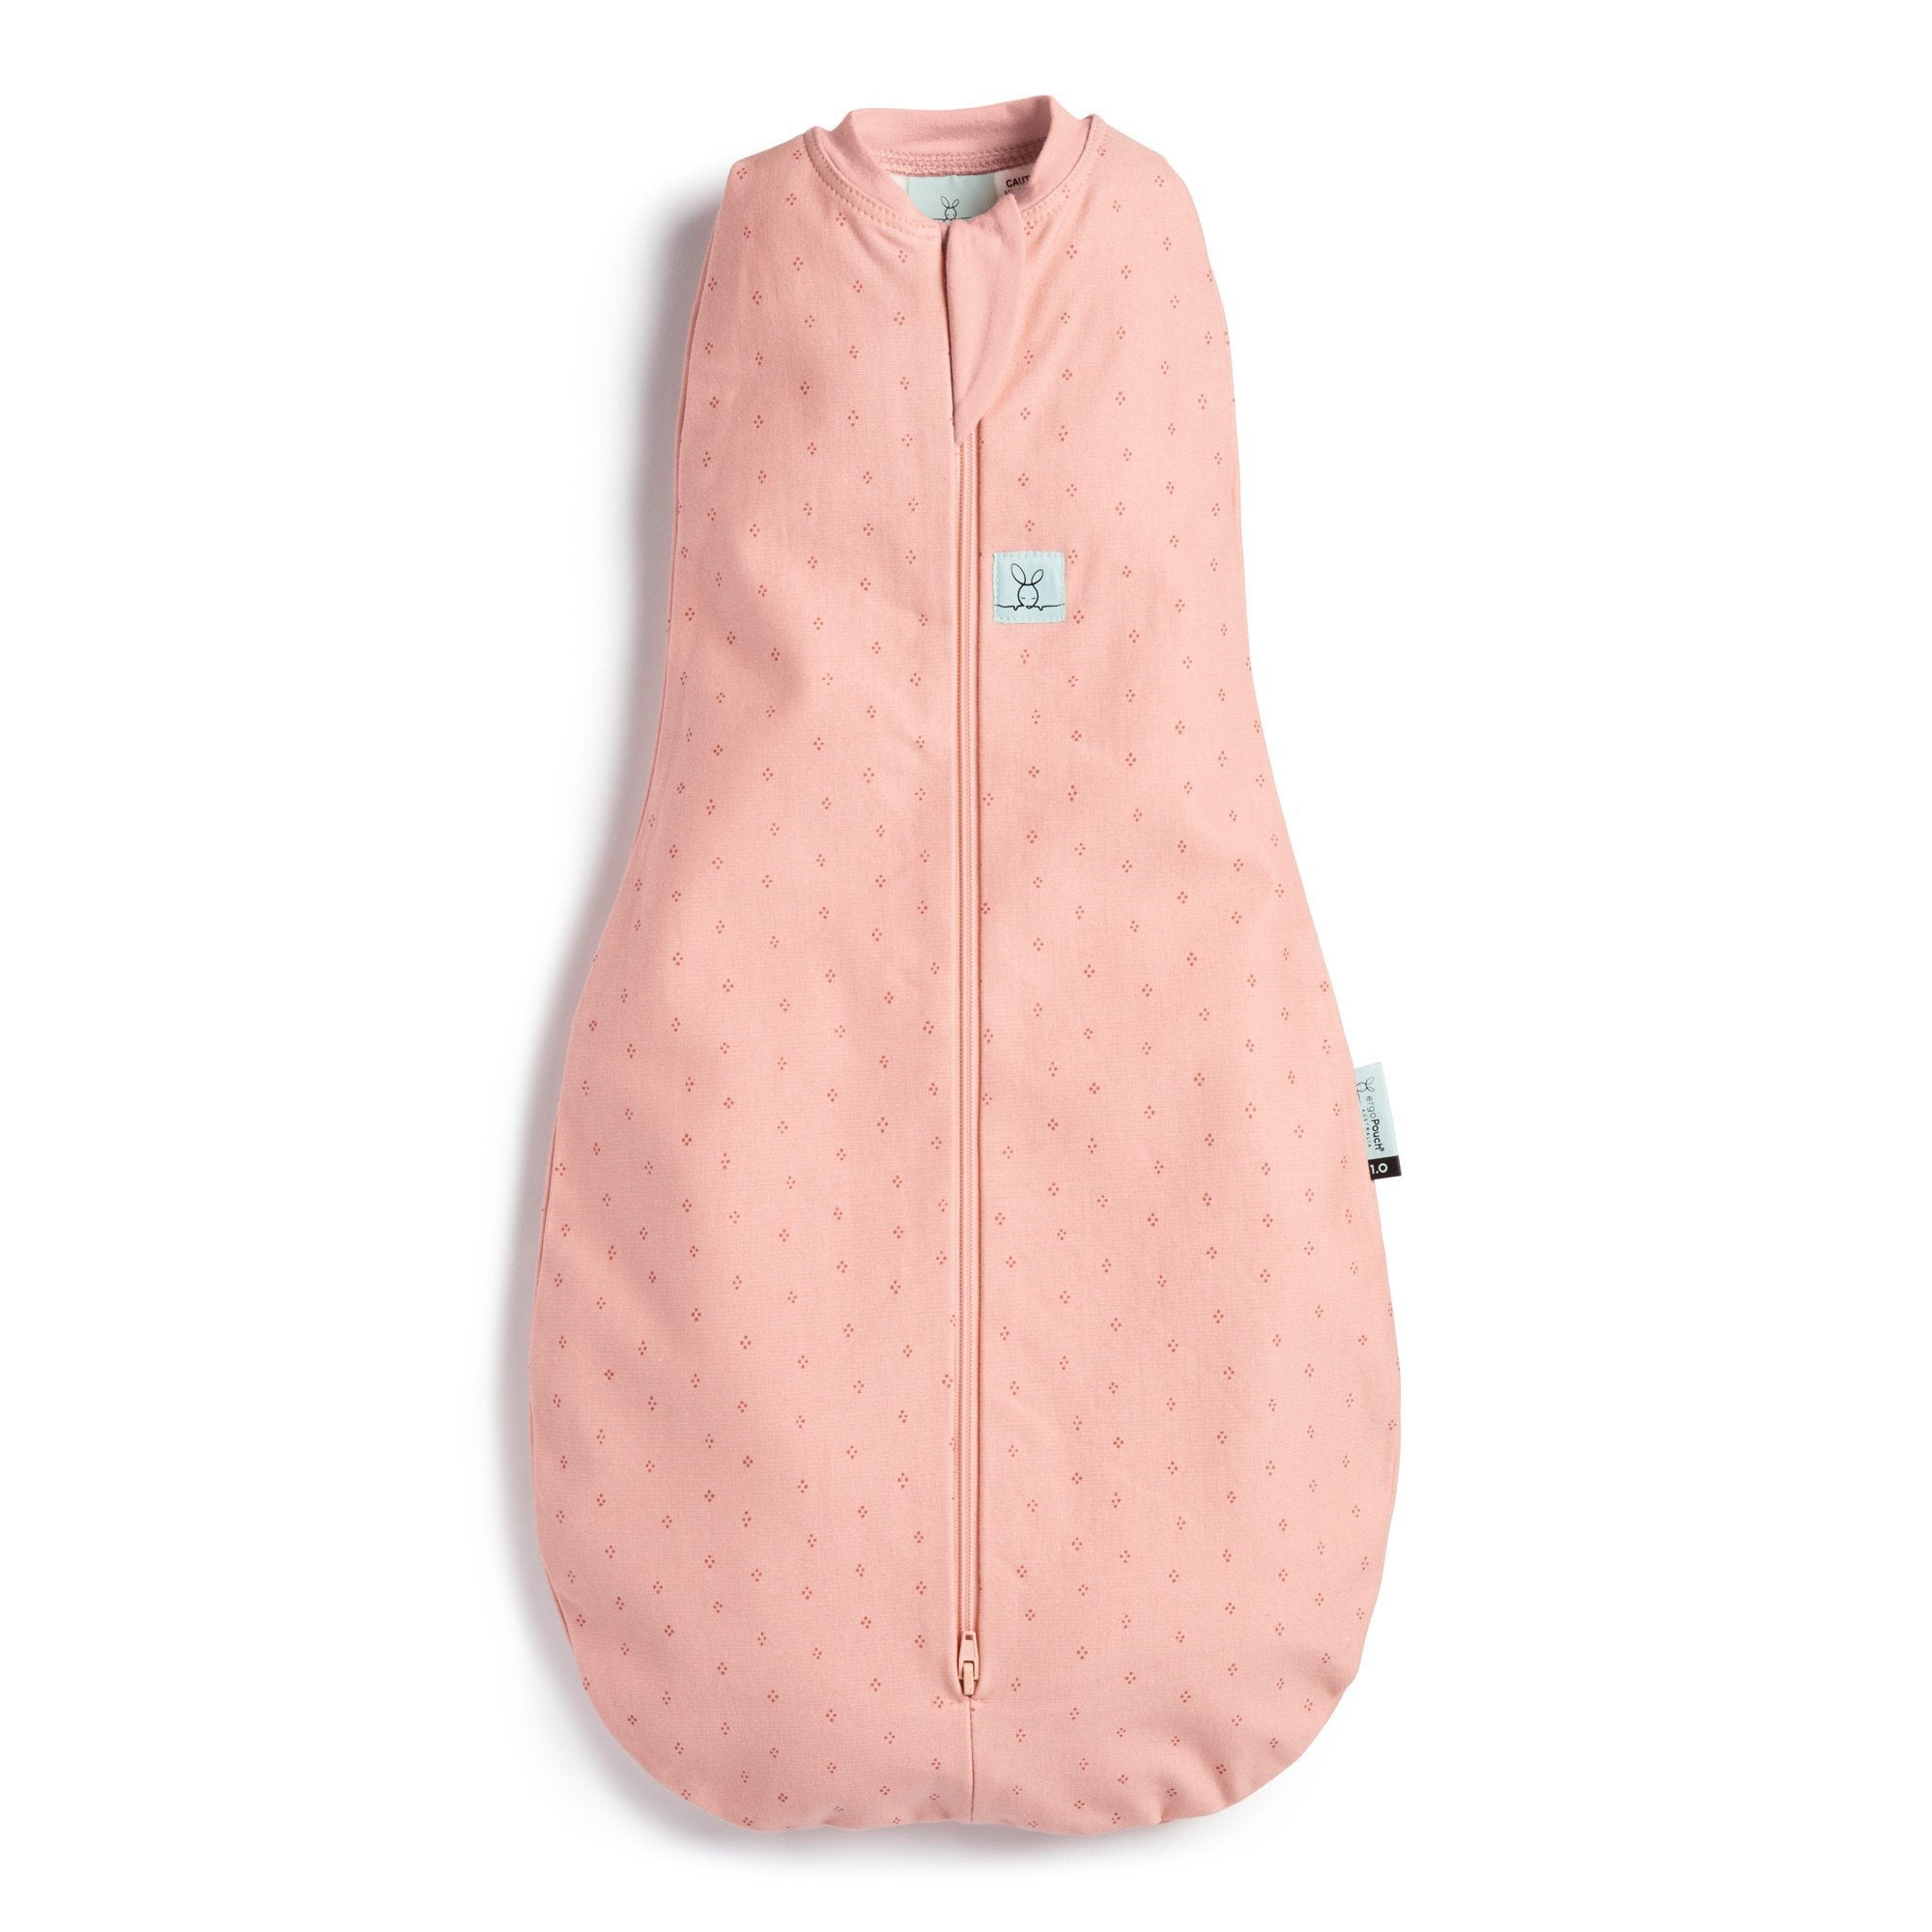 Cocoon Swaddle Bag 1.0 tog (Berries)